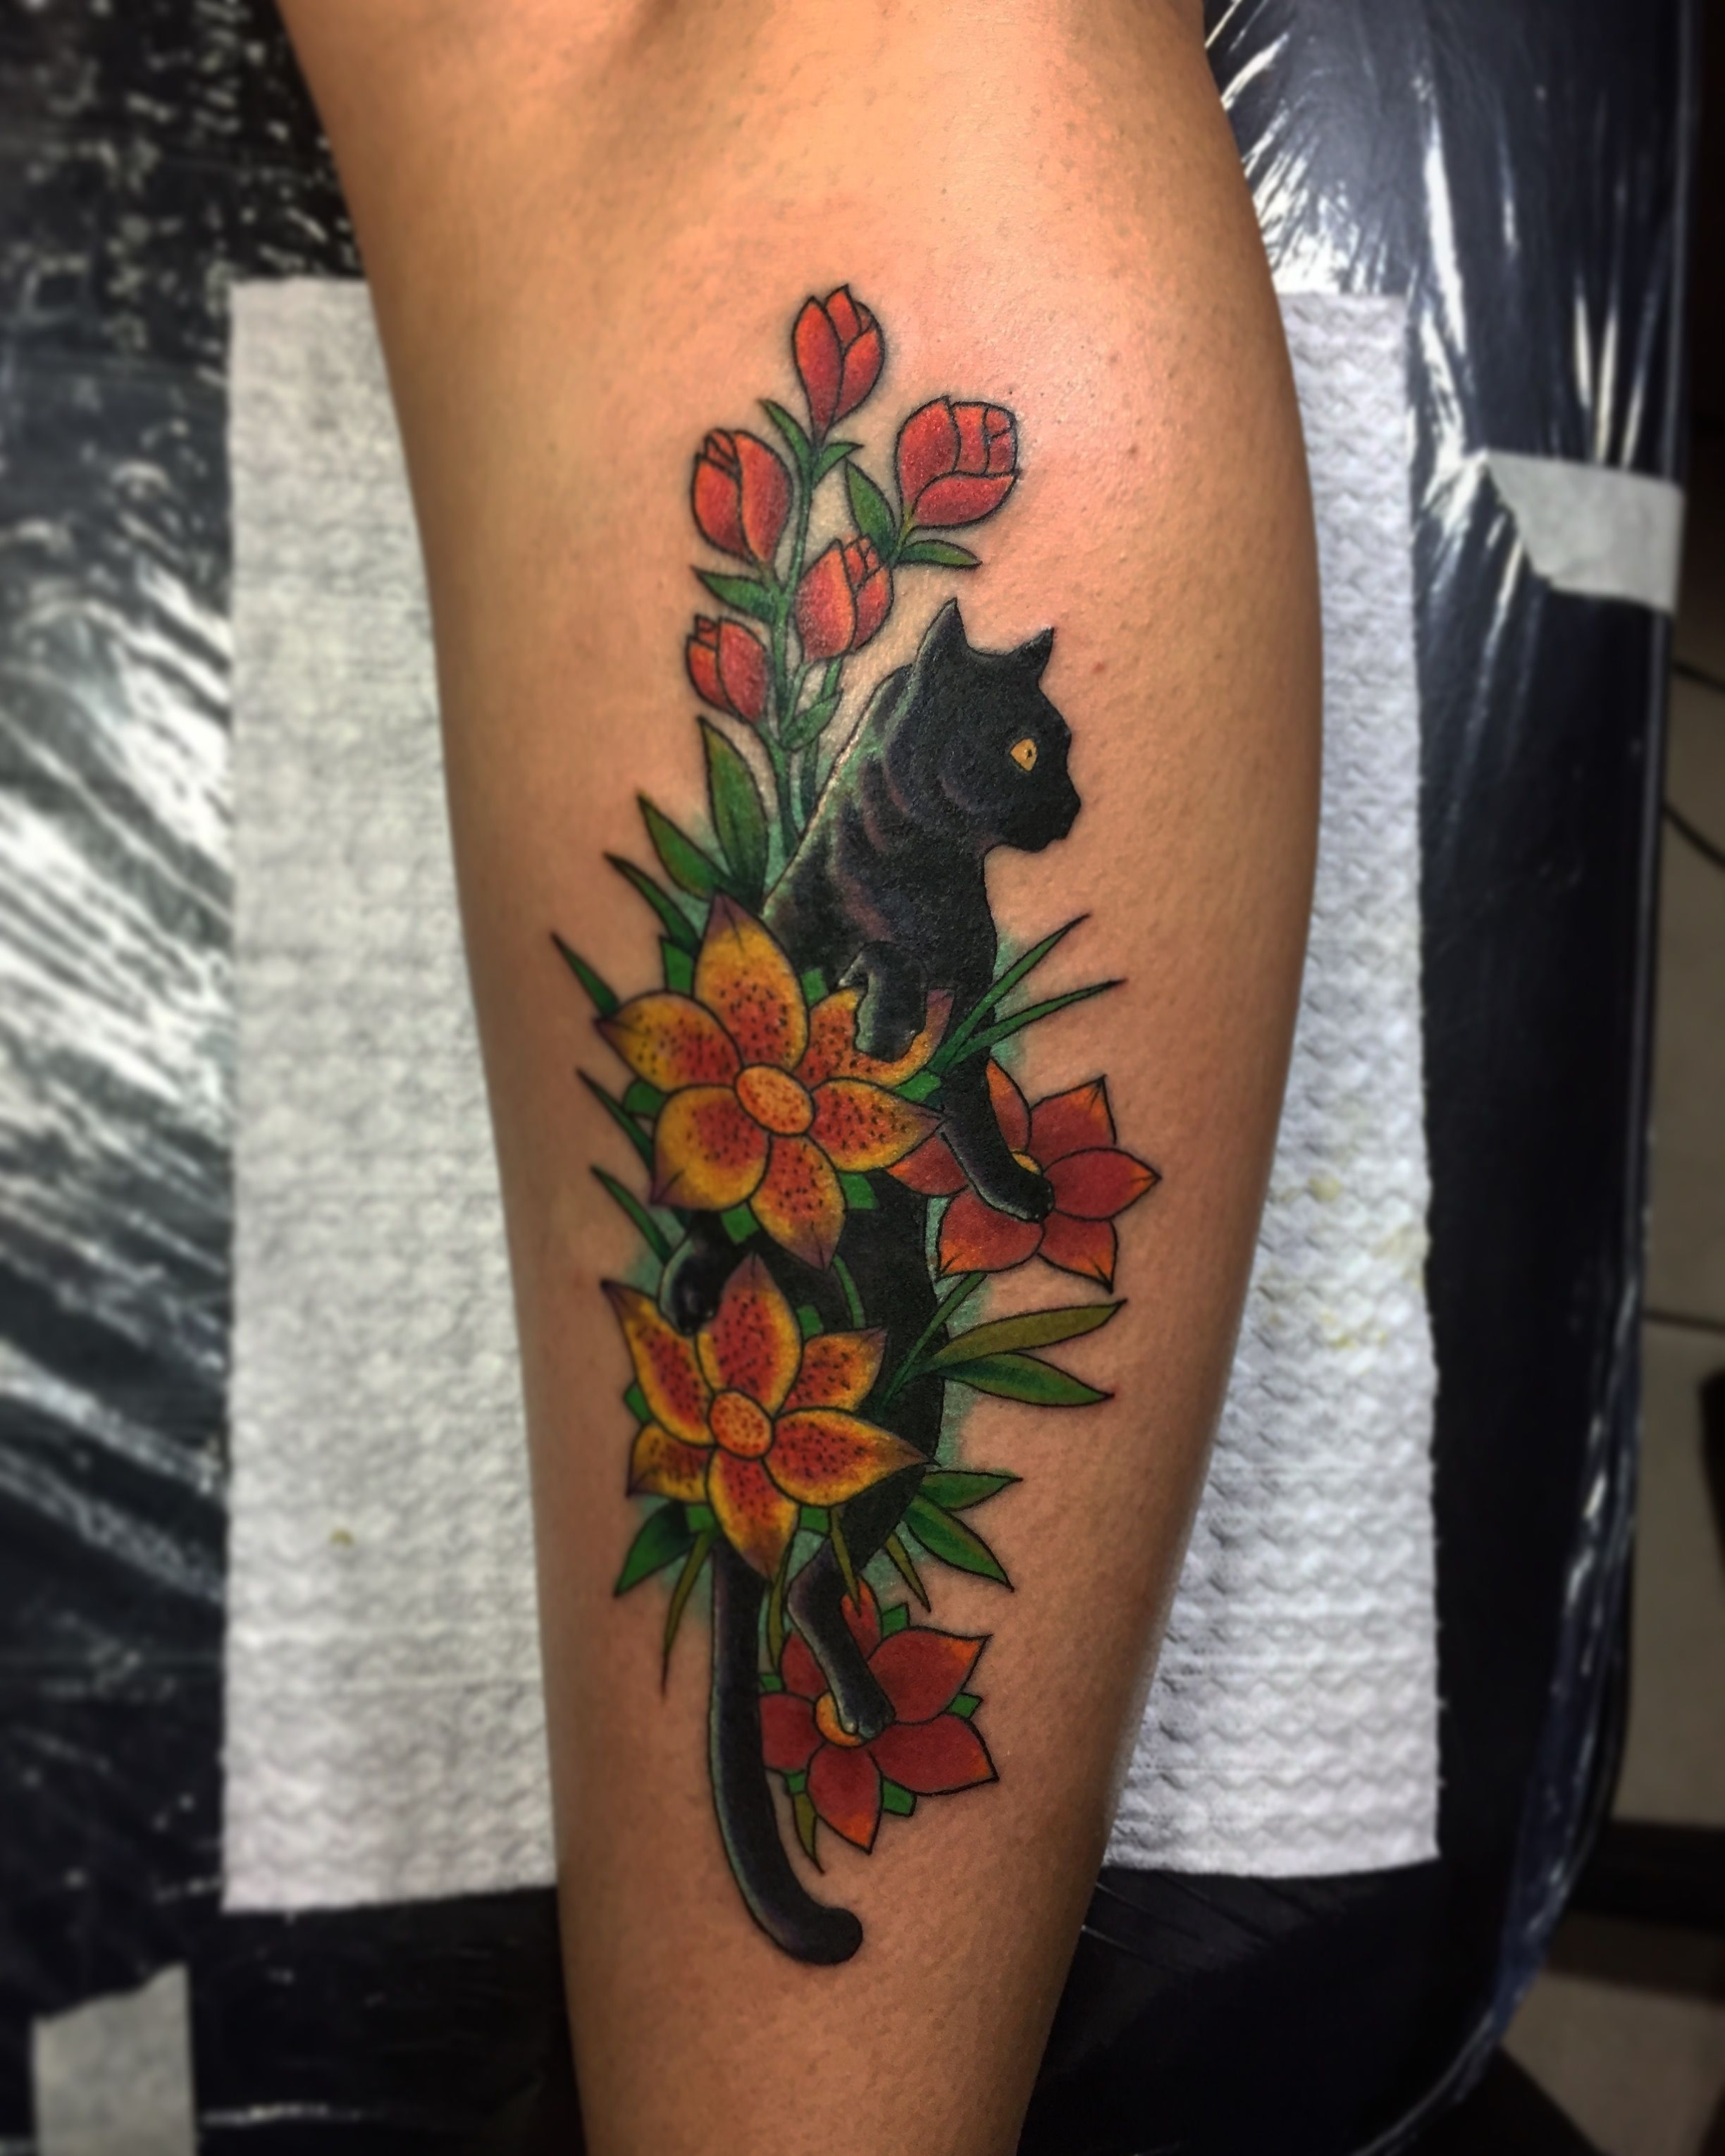 Black Cat And Flowers Tattoo Cat Tattoo Designs Black Cat Tattoos Tattoo Designs